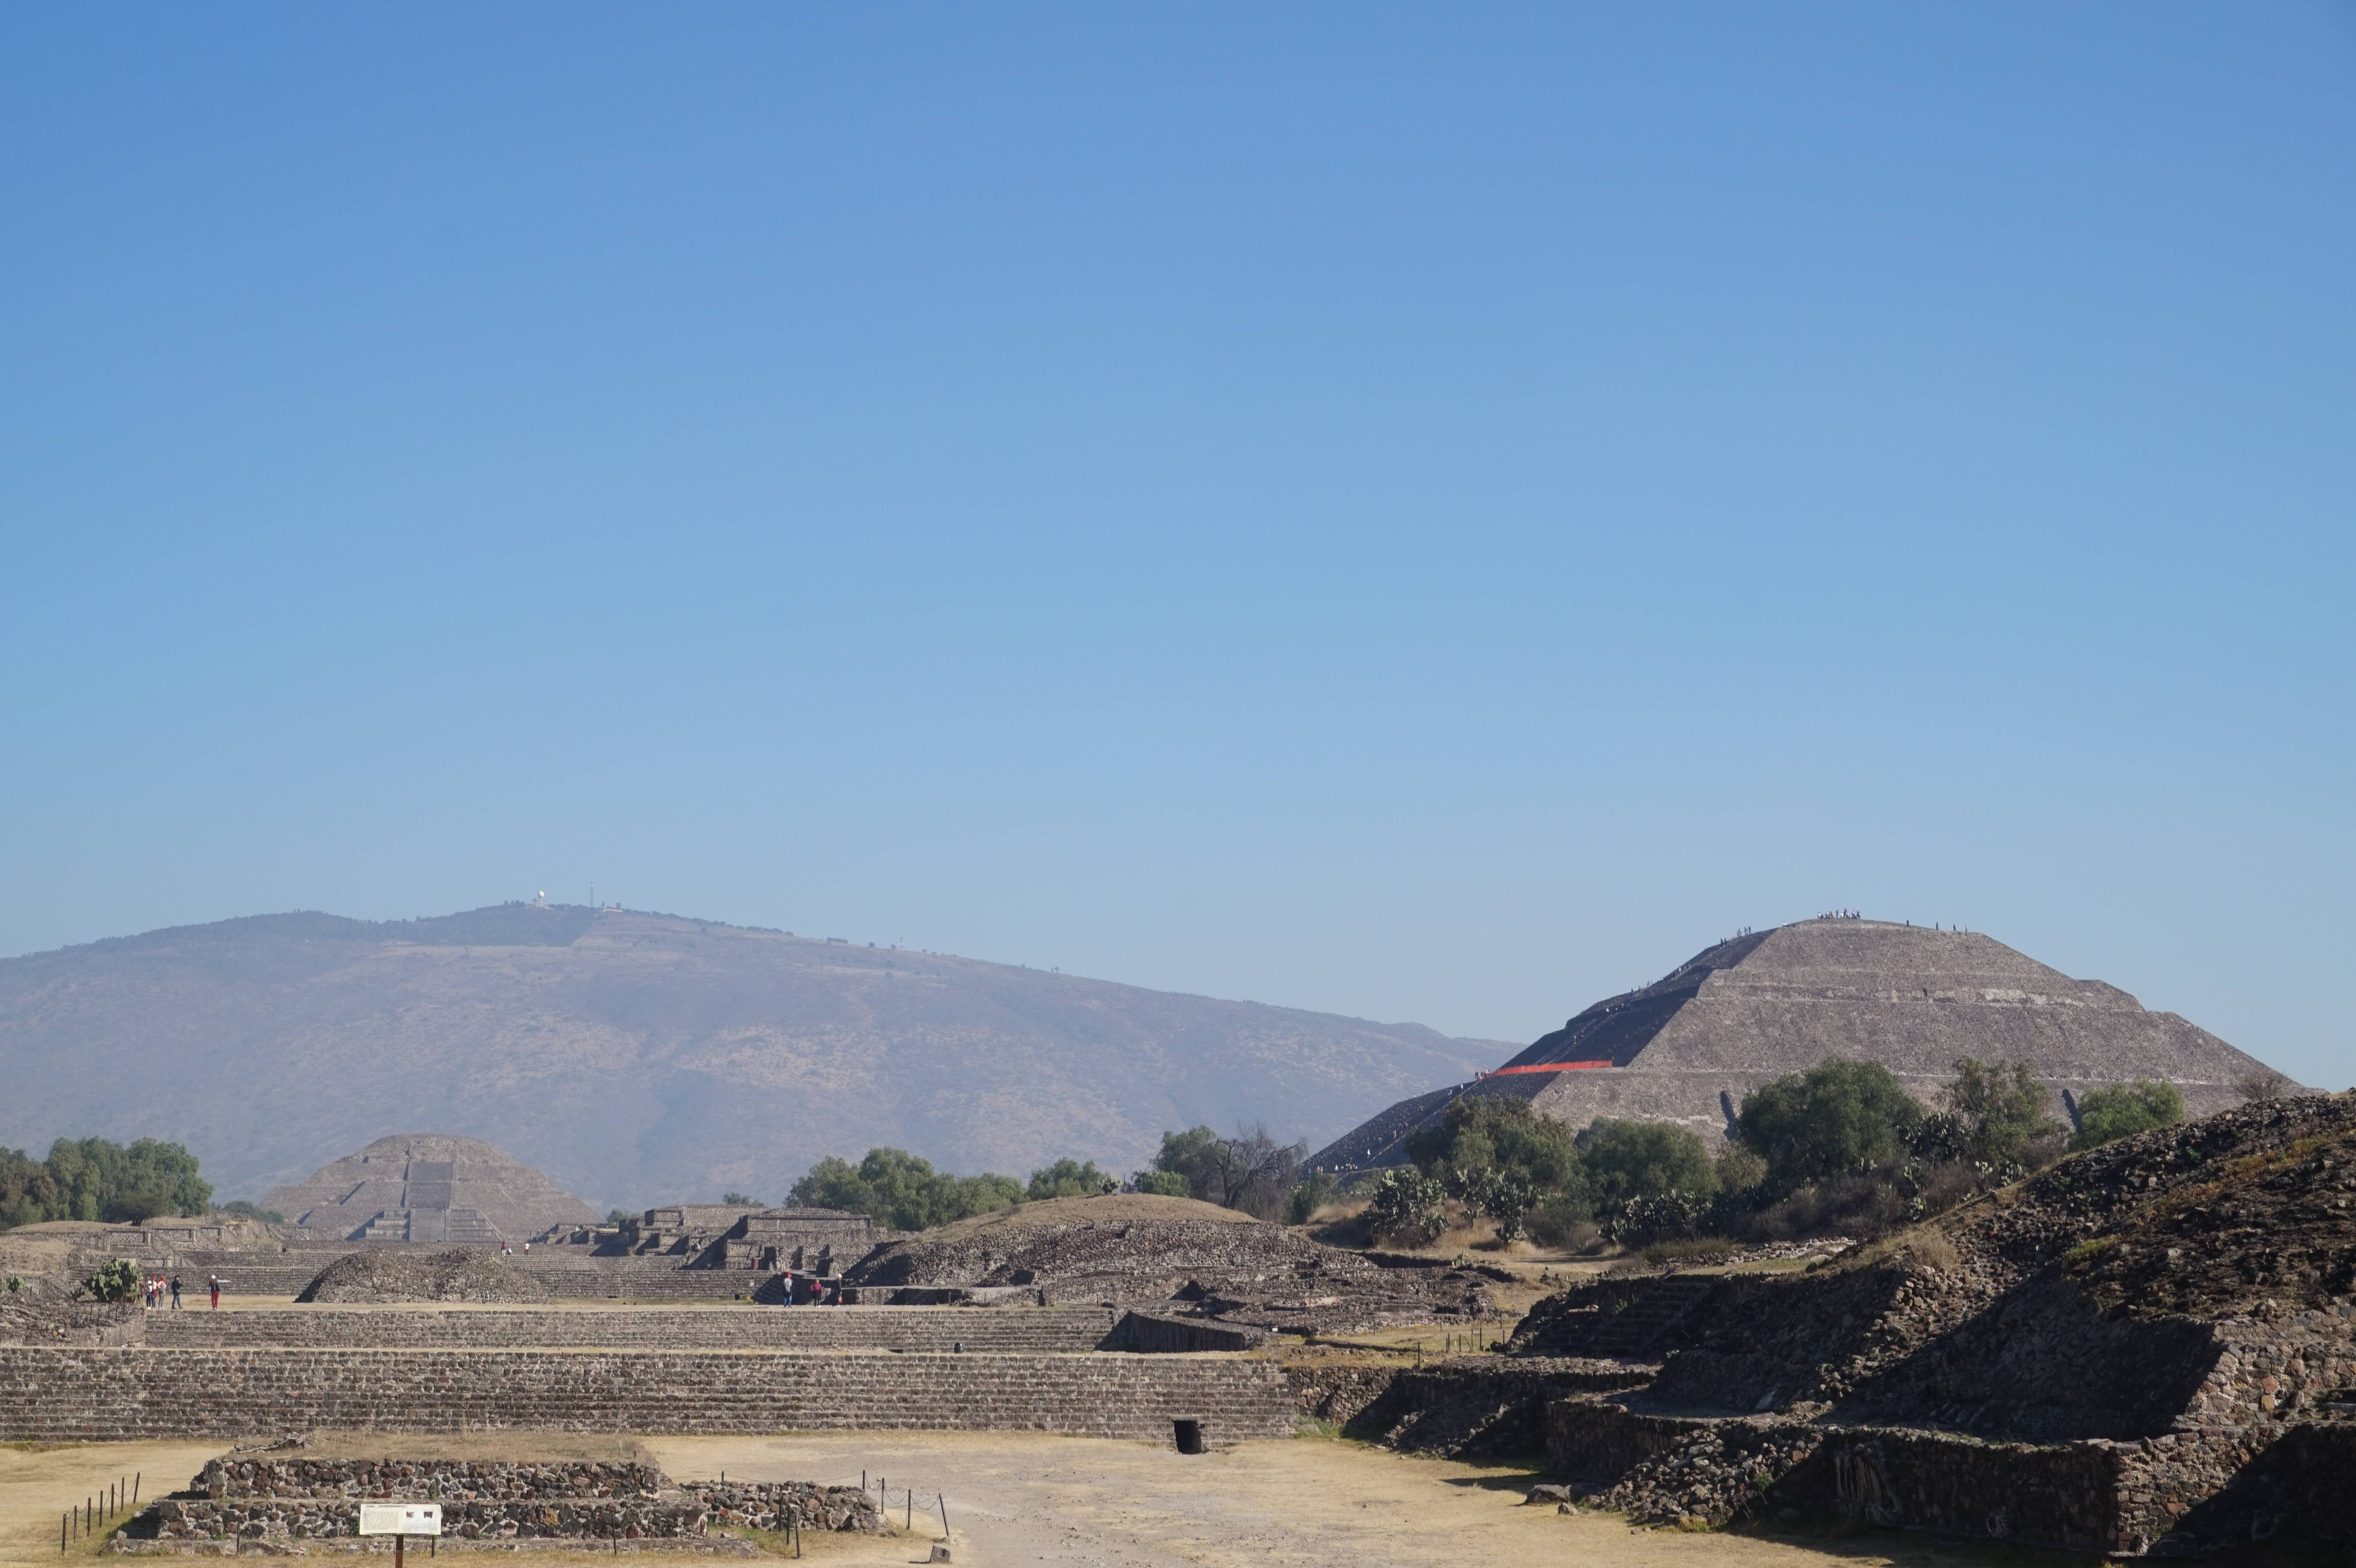 Photo 2: Teotihuacan